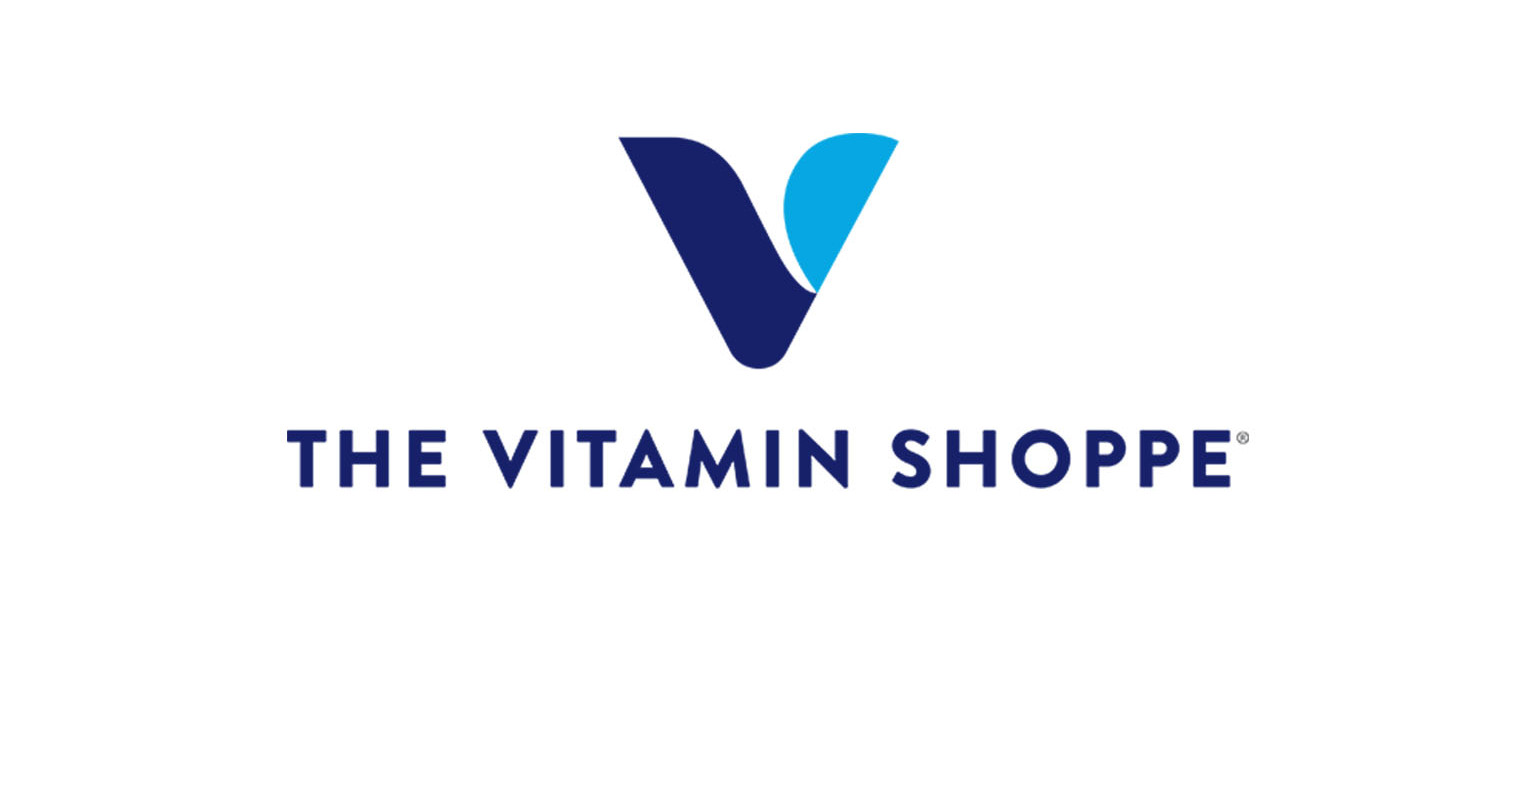 The Vitamin Shoppe Launches New Product Innovation With